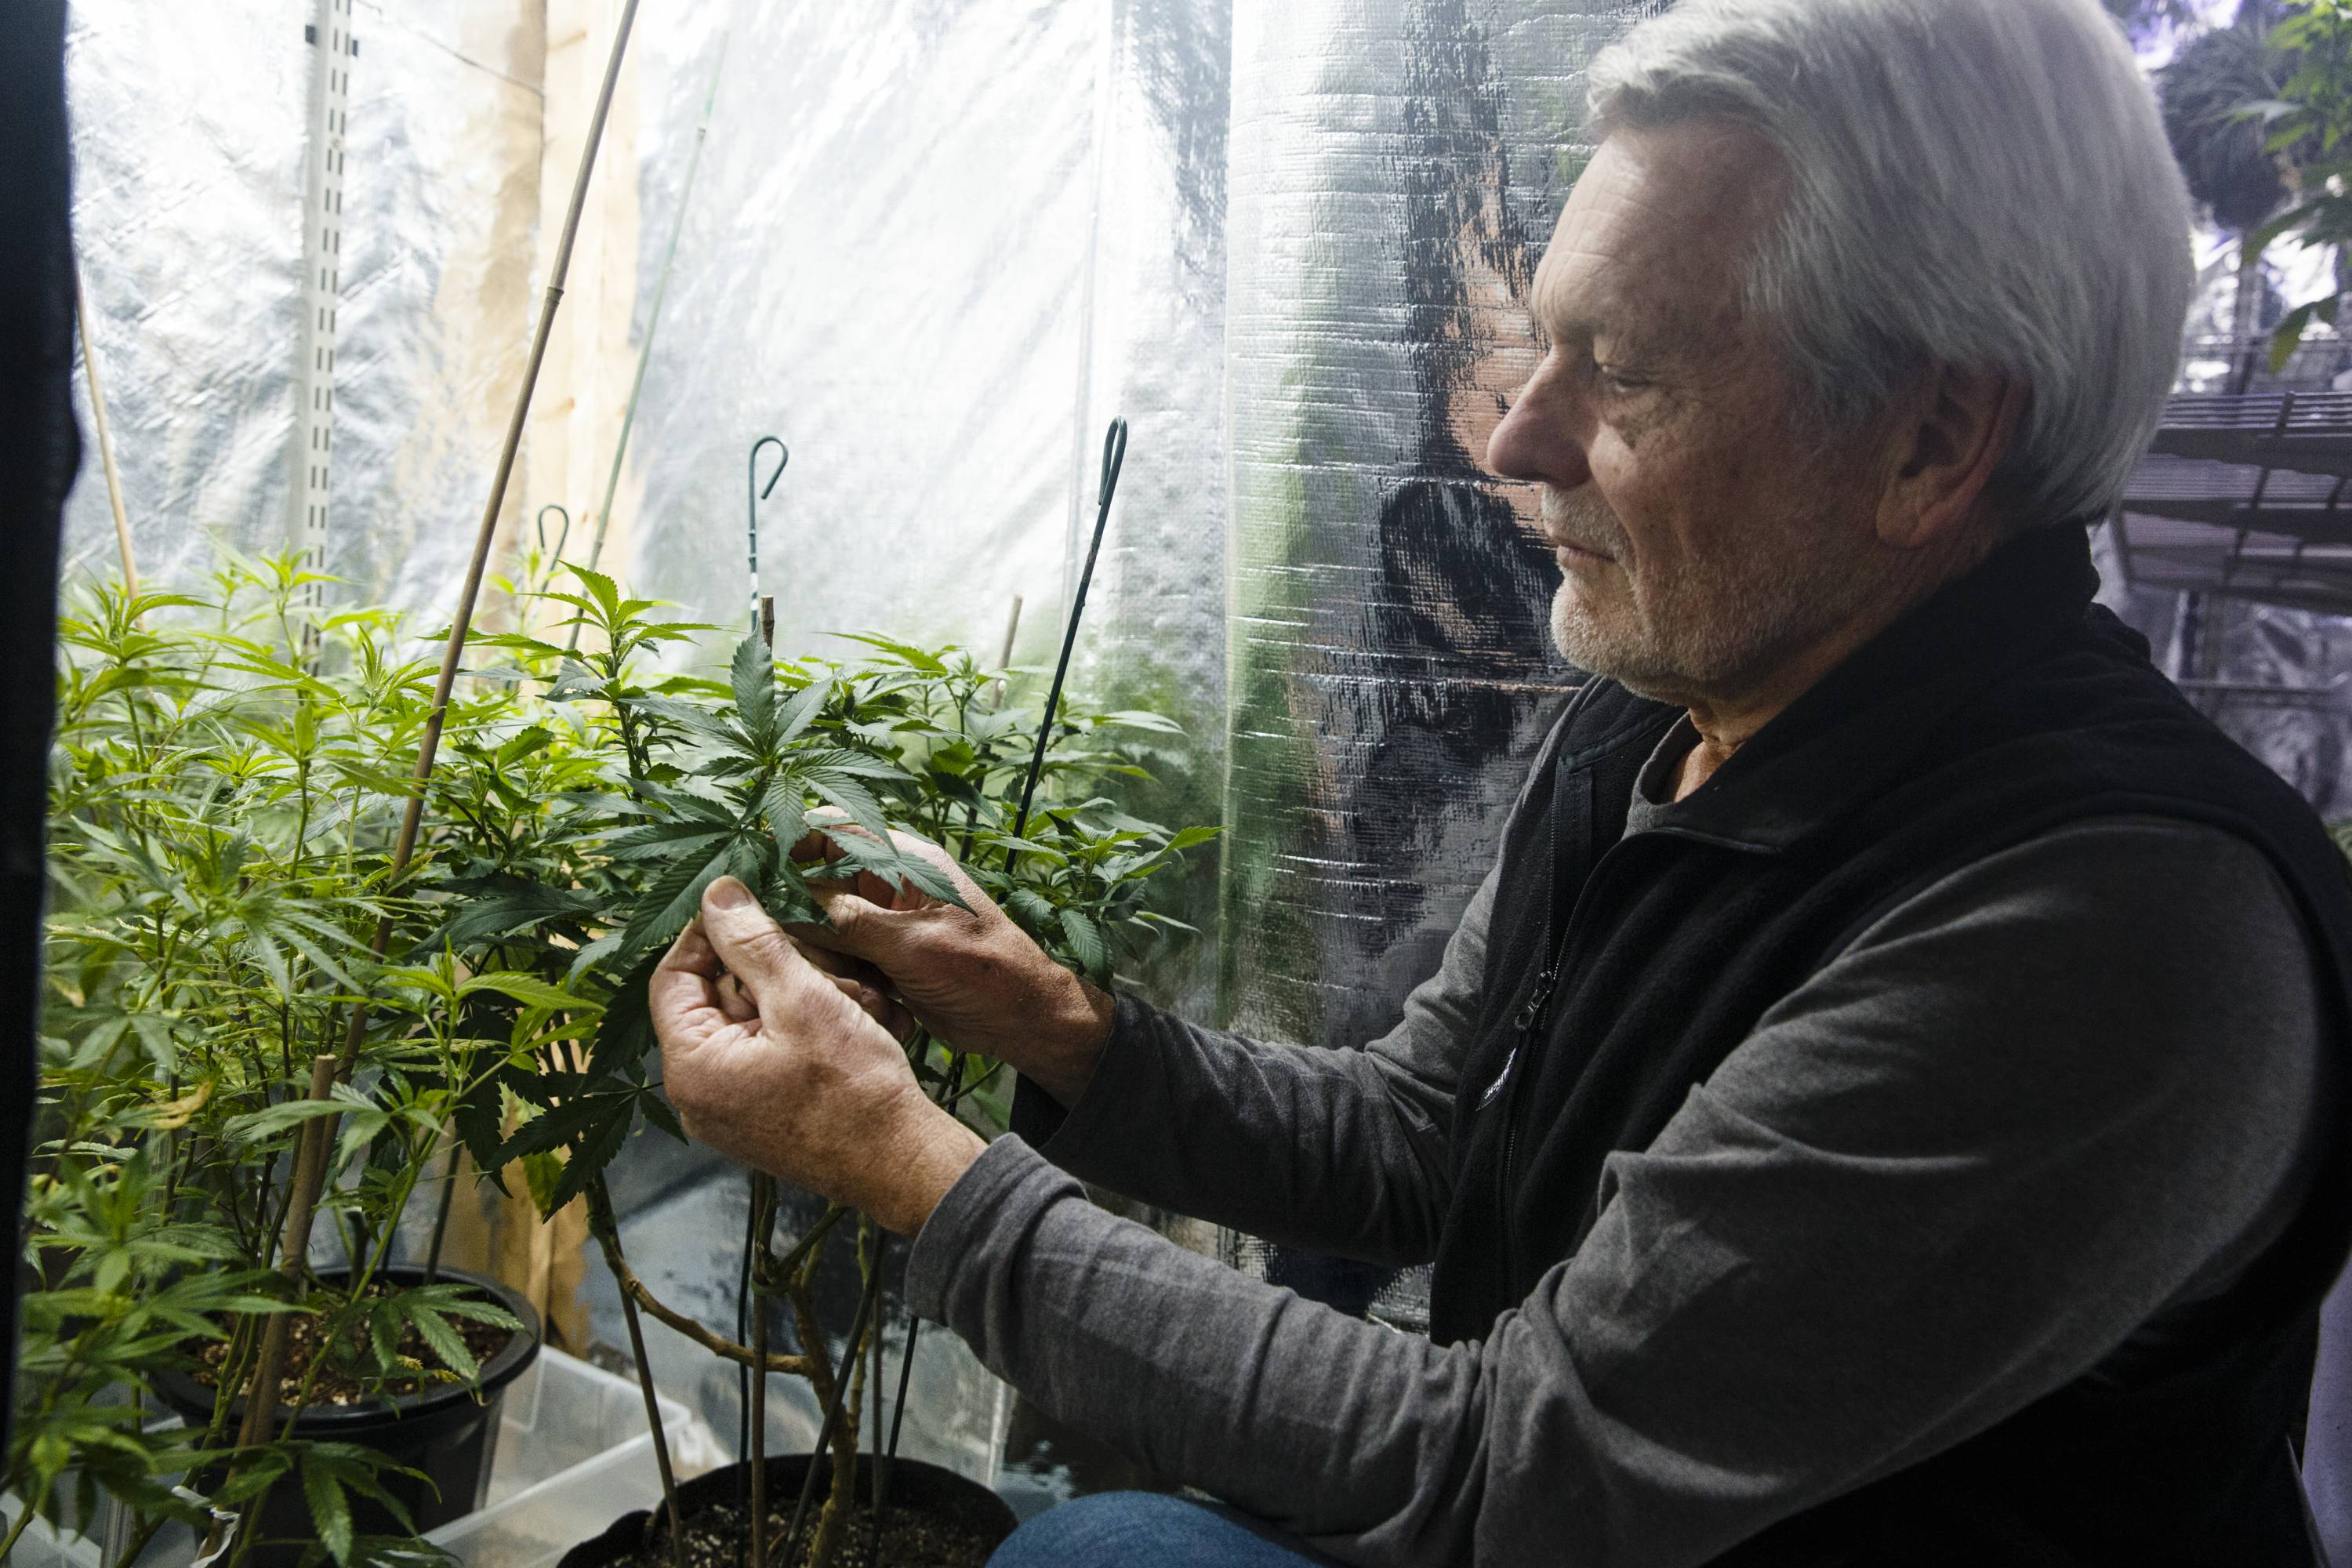 With Legal Pot Sales Coming, Baby Boomers Are Ready To Resume The Party